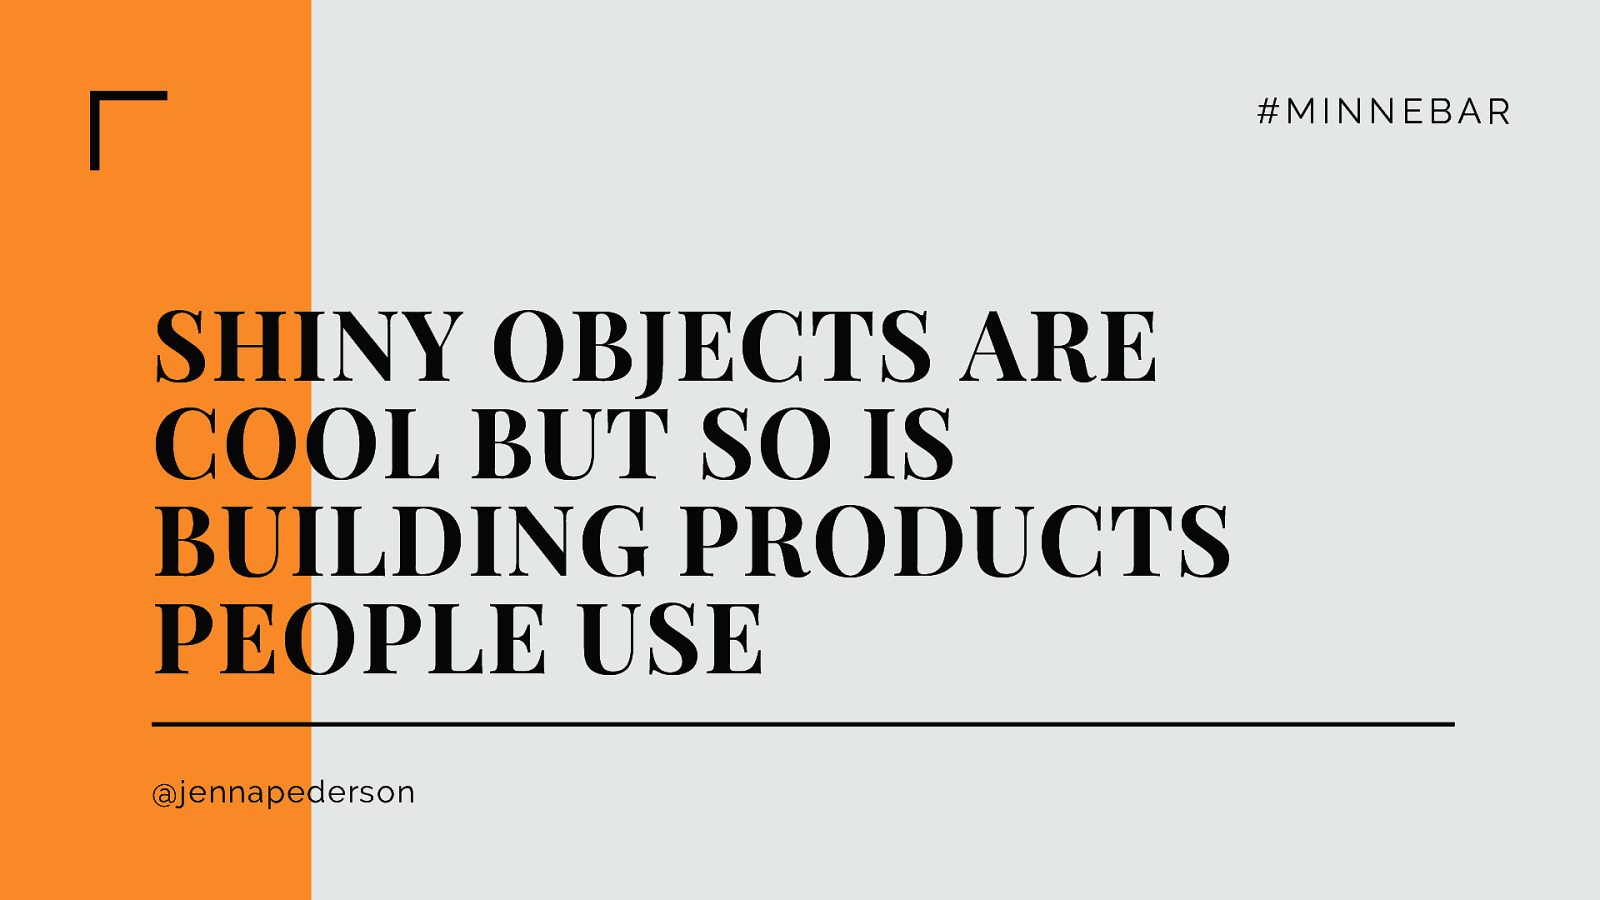 Shiny objects are cool, but so is building products people use